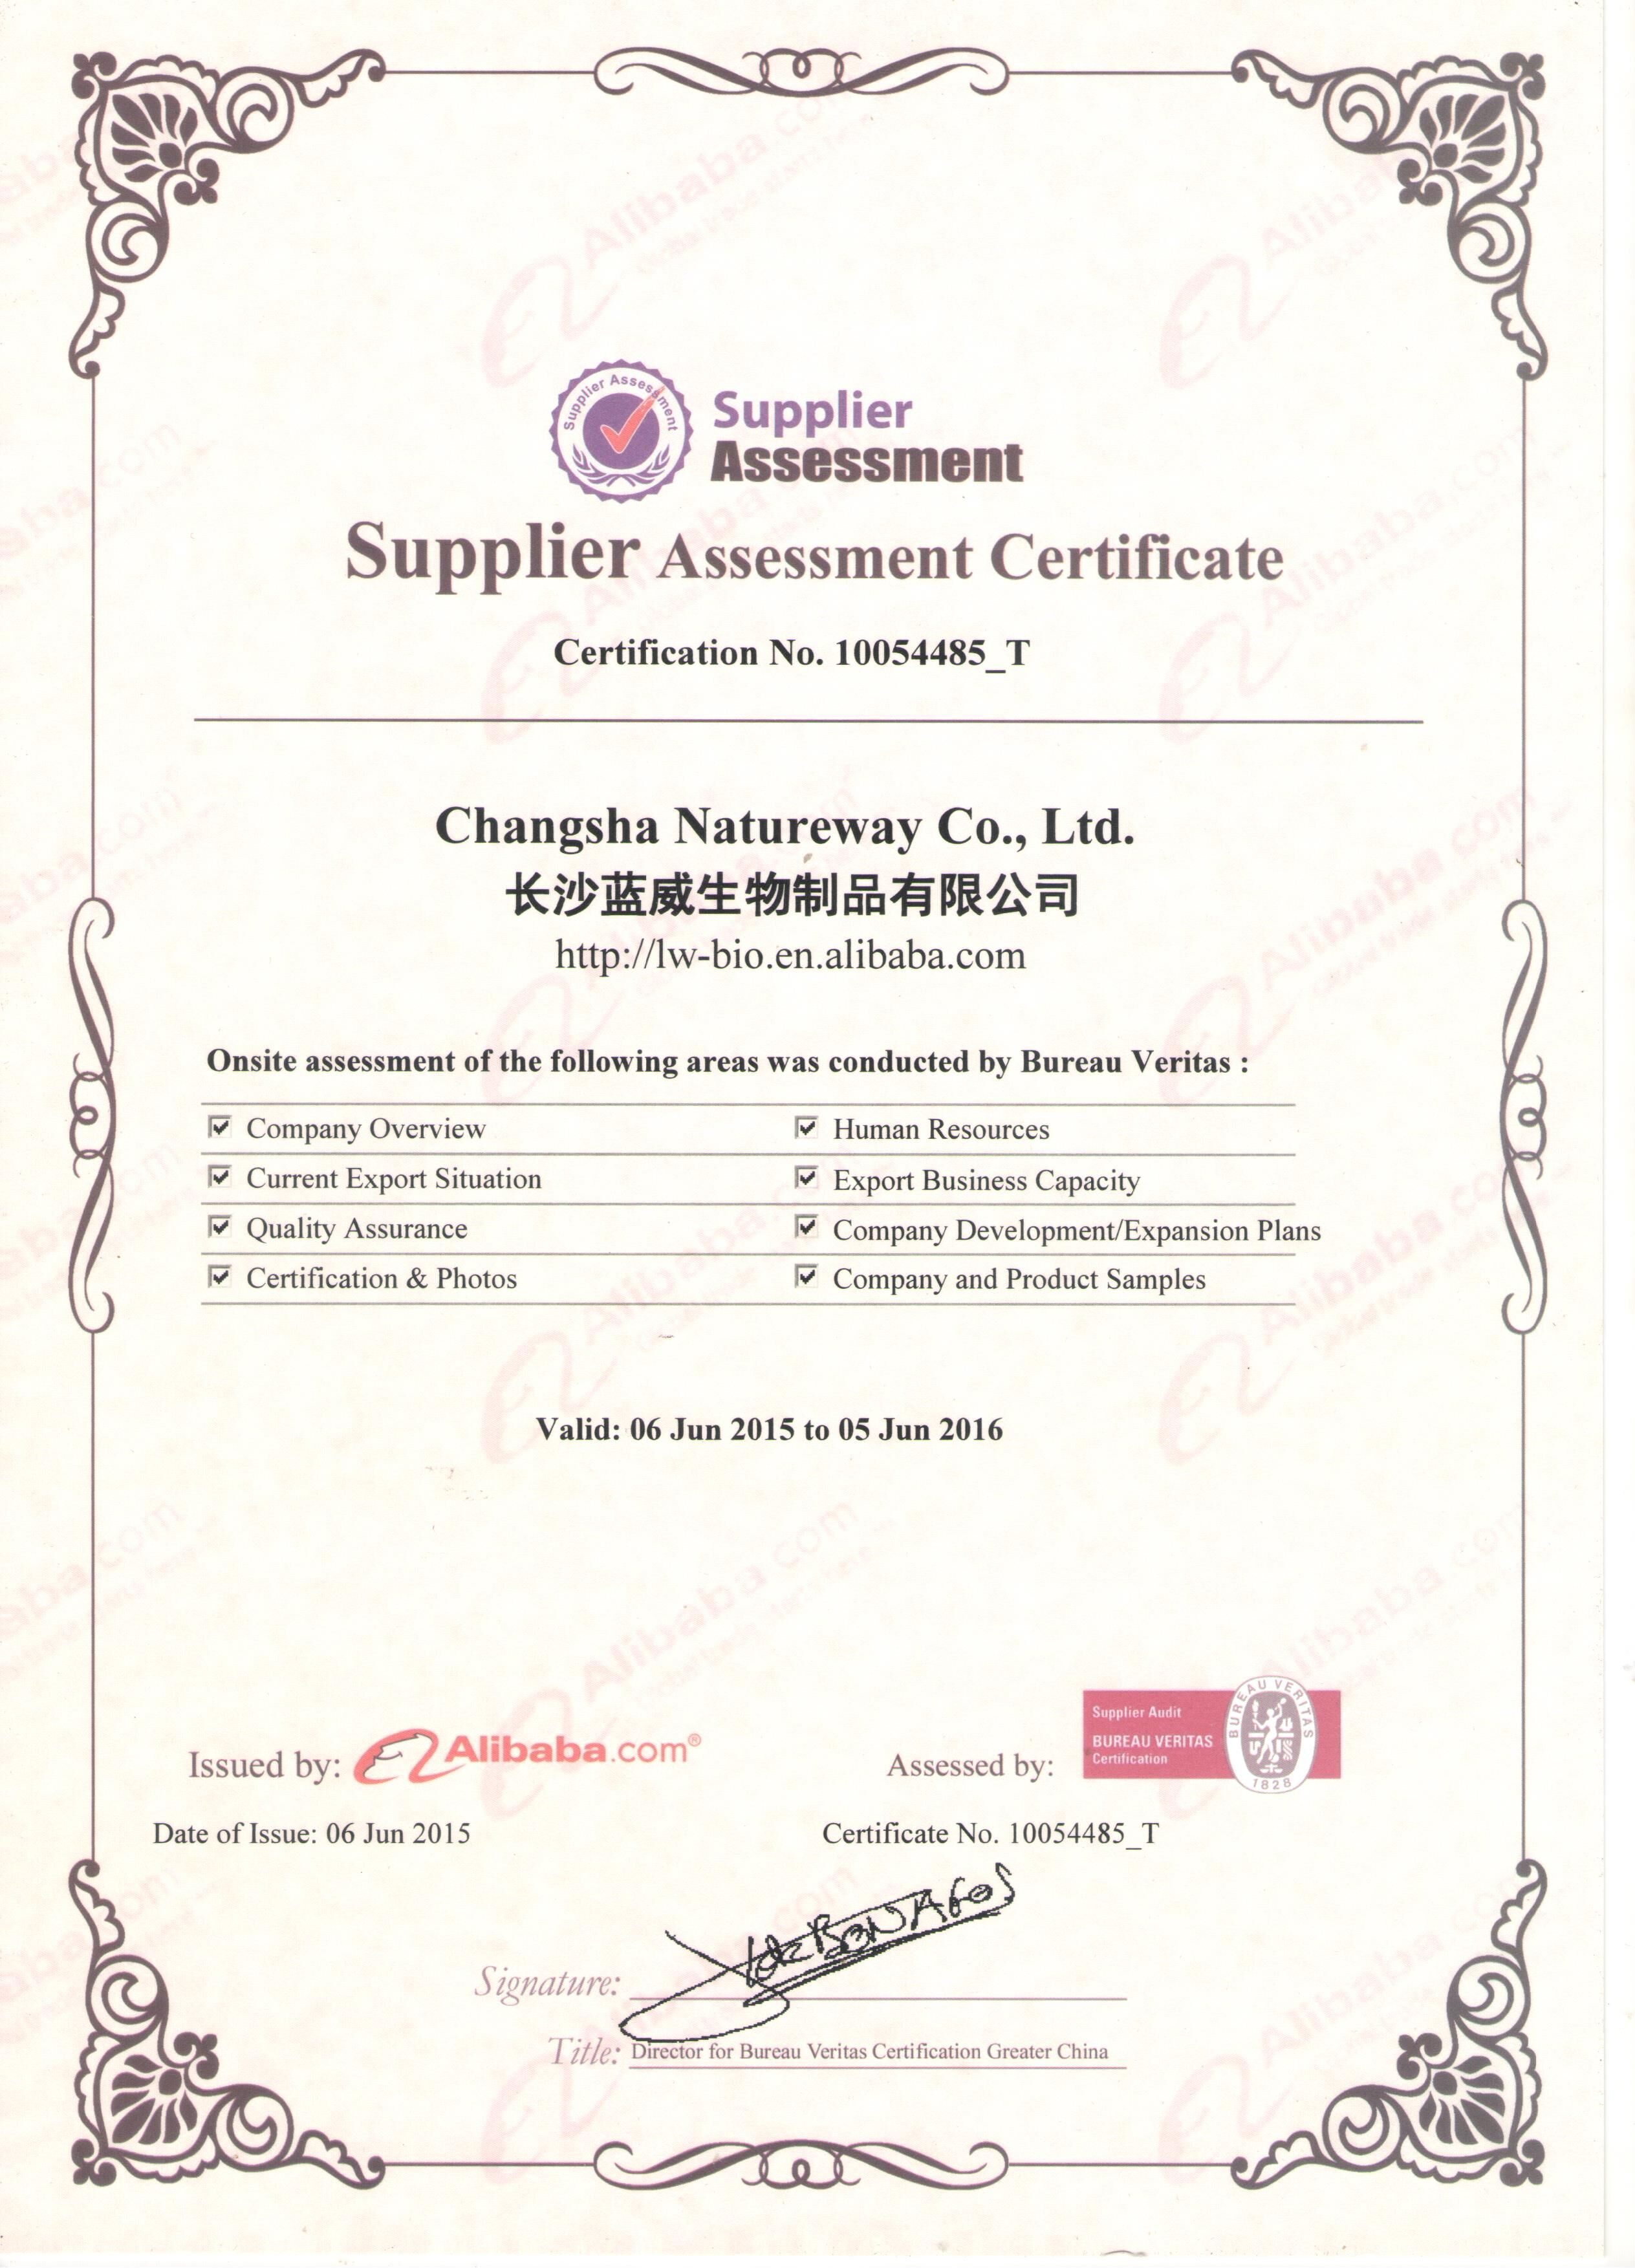 We successfully passed the BV Quality System Certificated